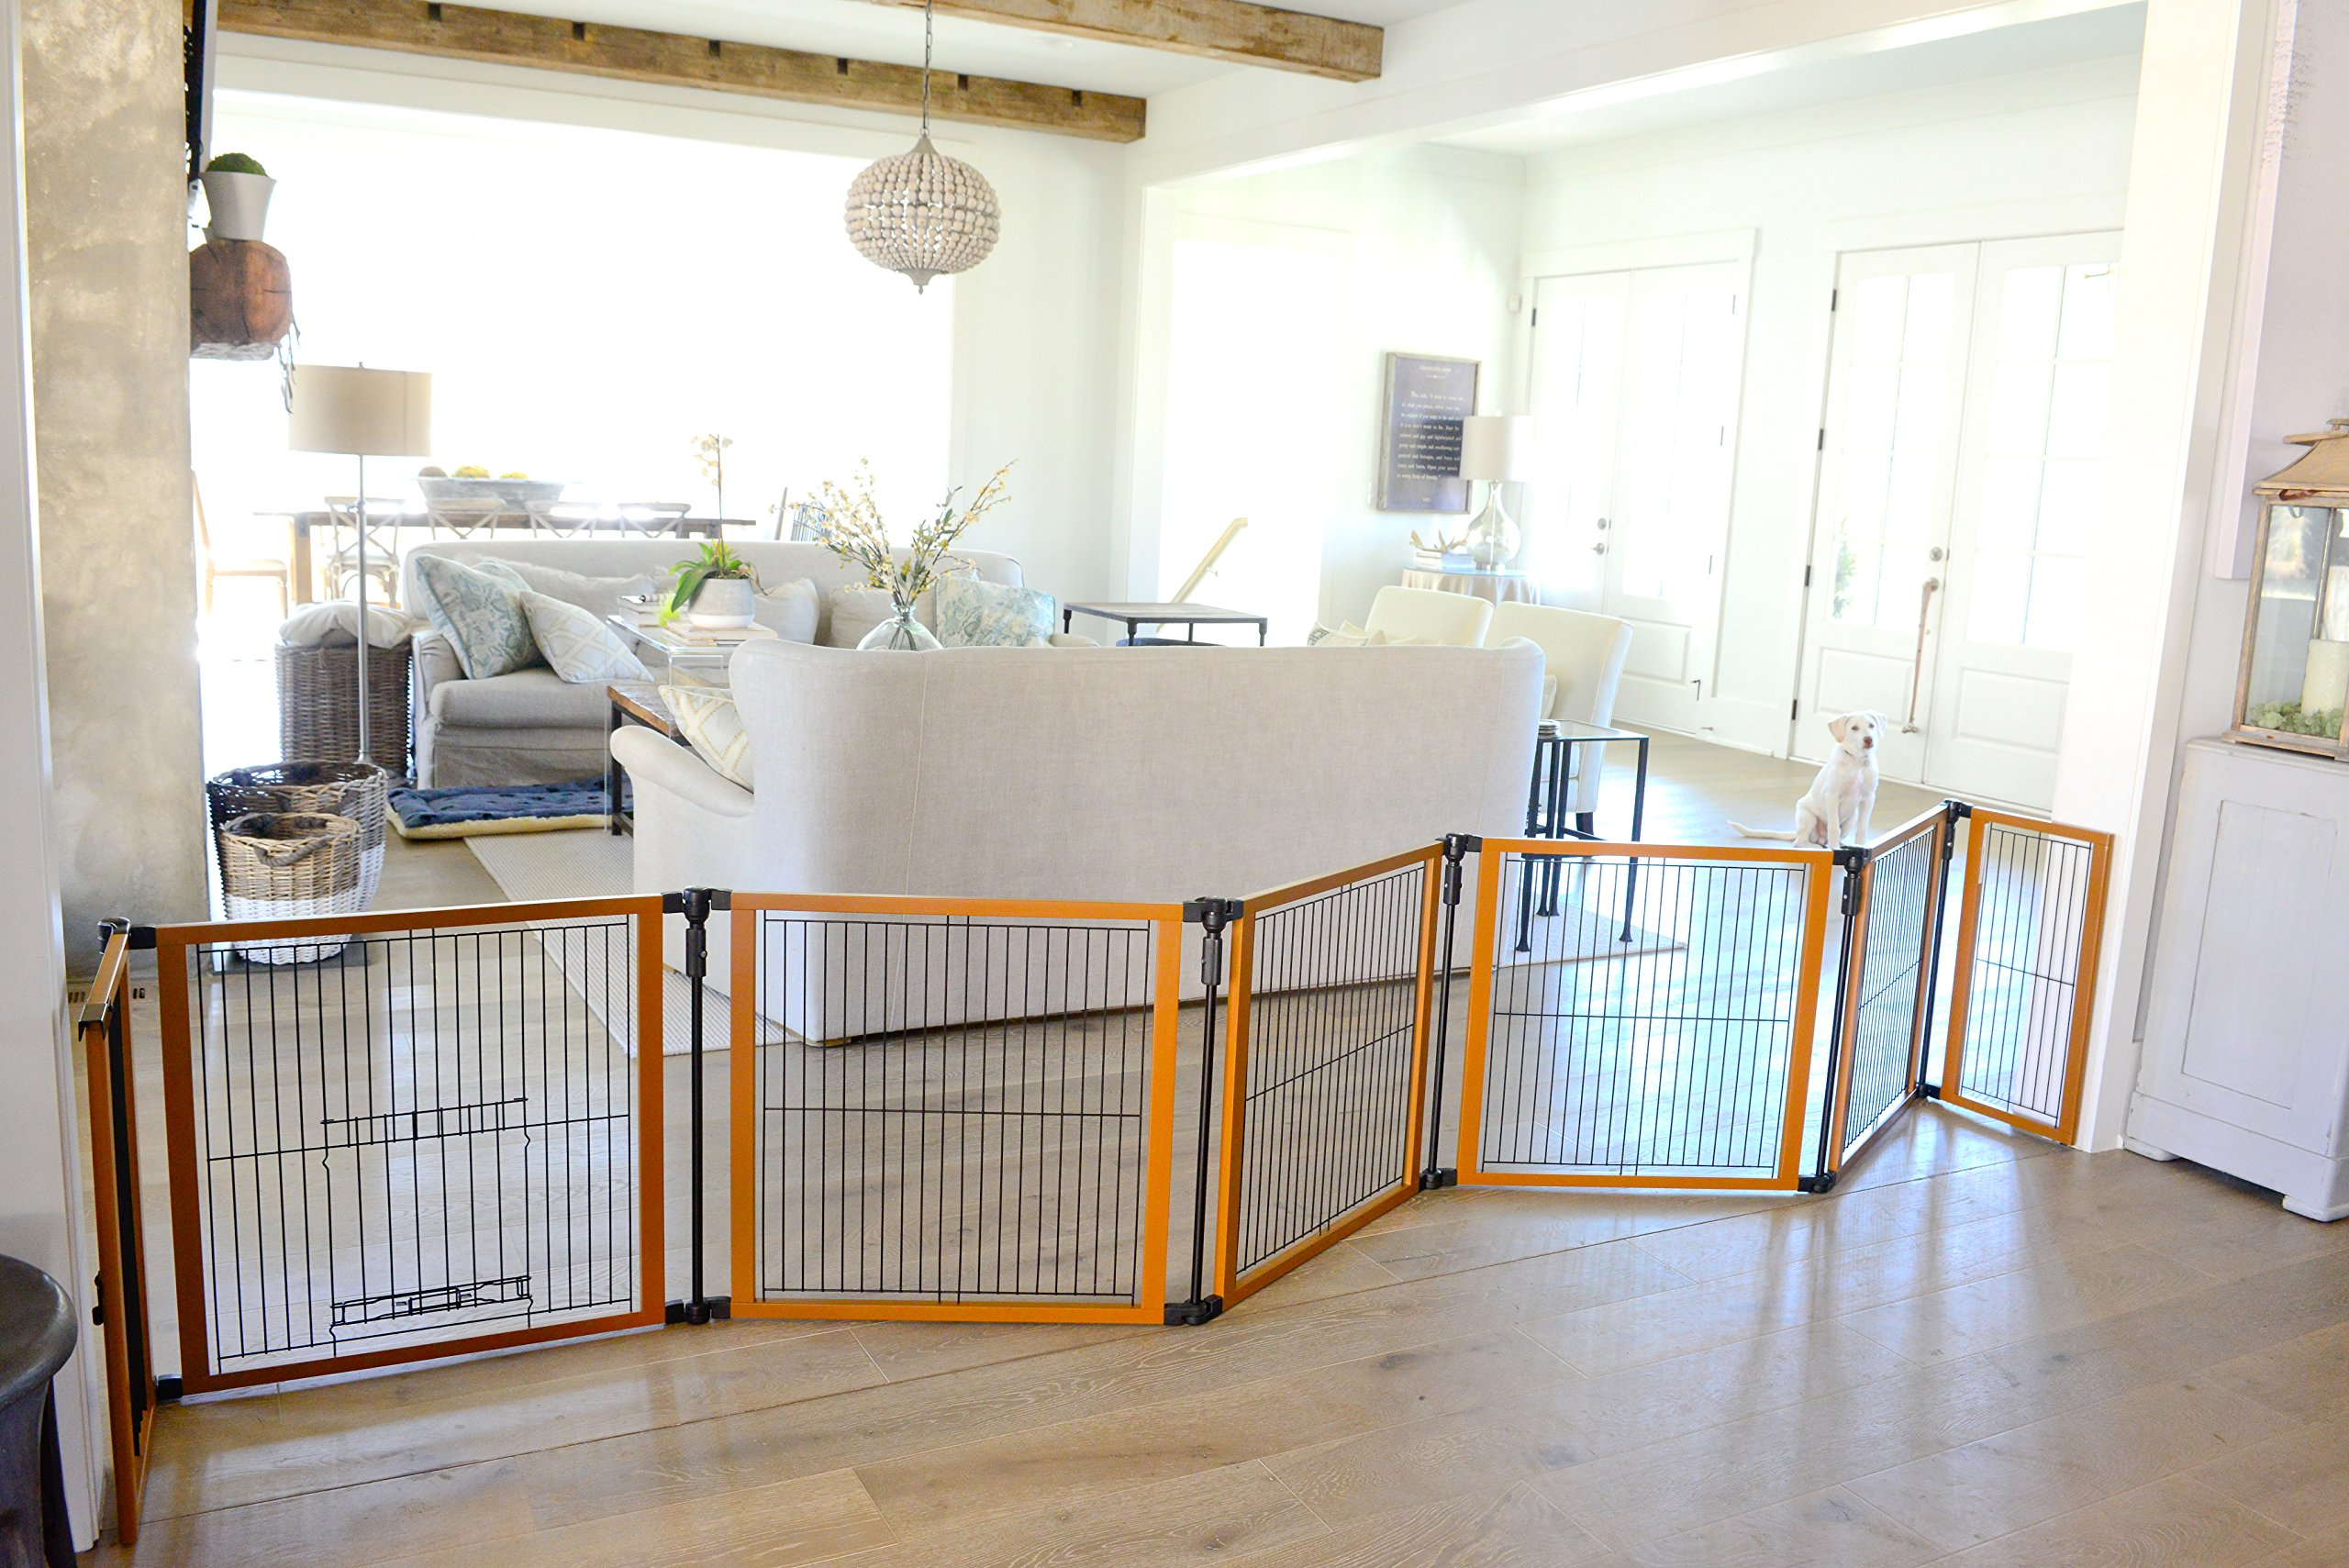 5 Pet Gates That Could Be Used For Garage Door Openings 27